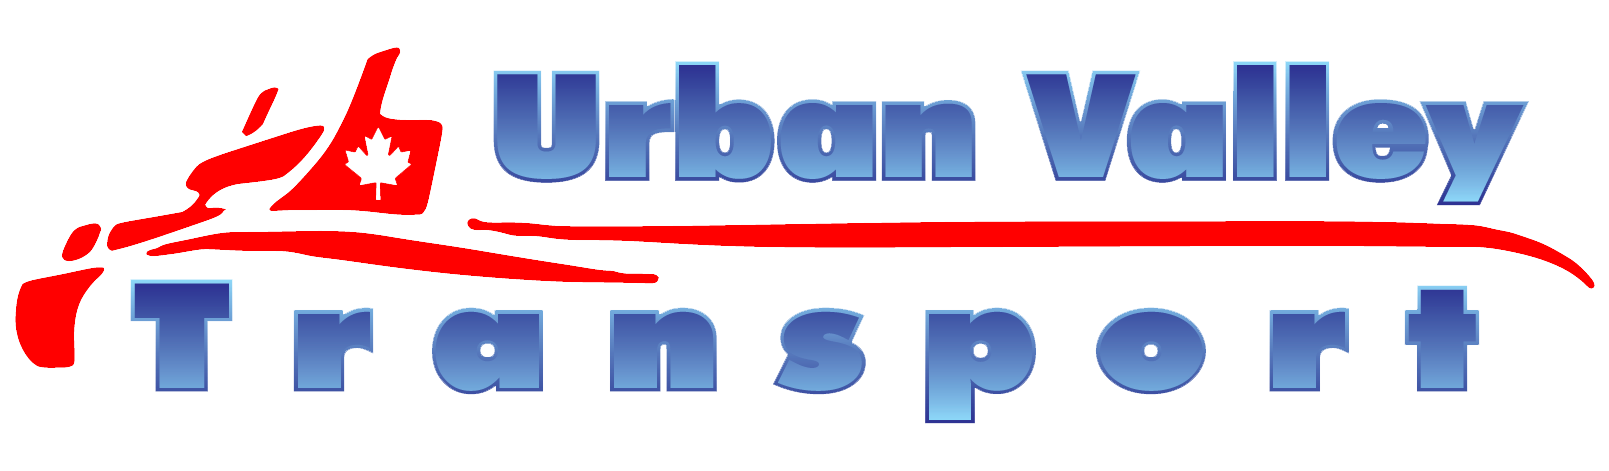 UVT Logo for the about urban valley tarnsport page